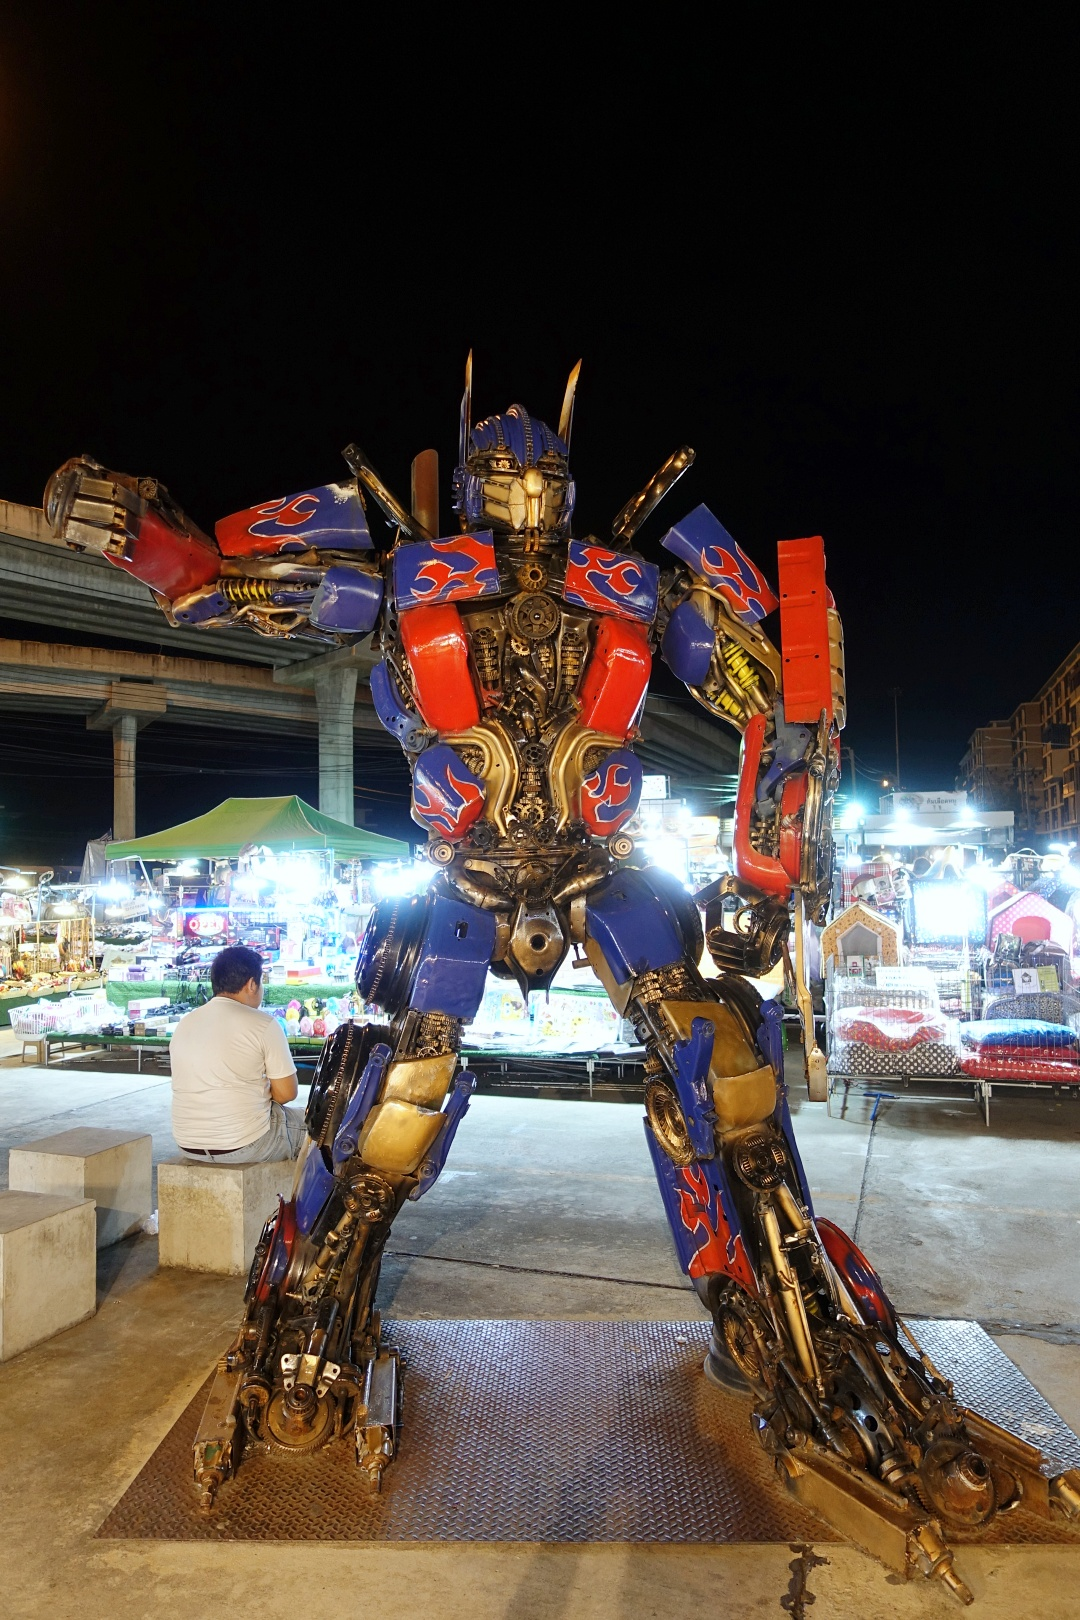 August 2018 Bangkok | Liab Duan Night Market - Optimus Prime | joanne-khoo.com